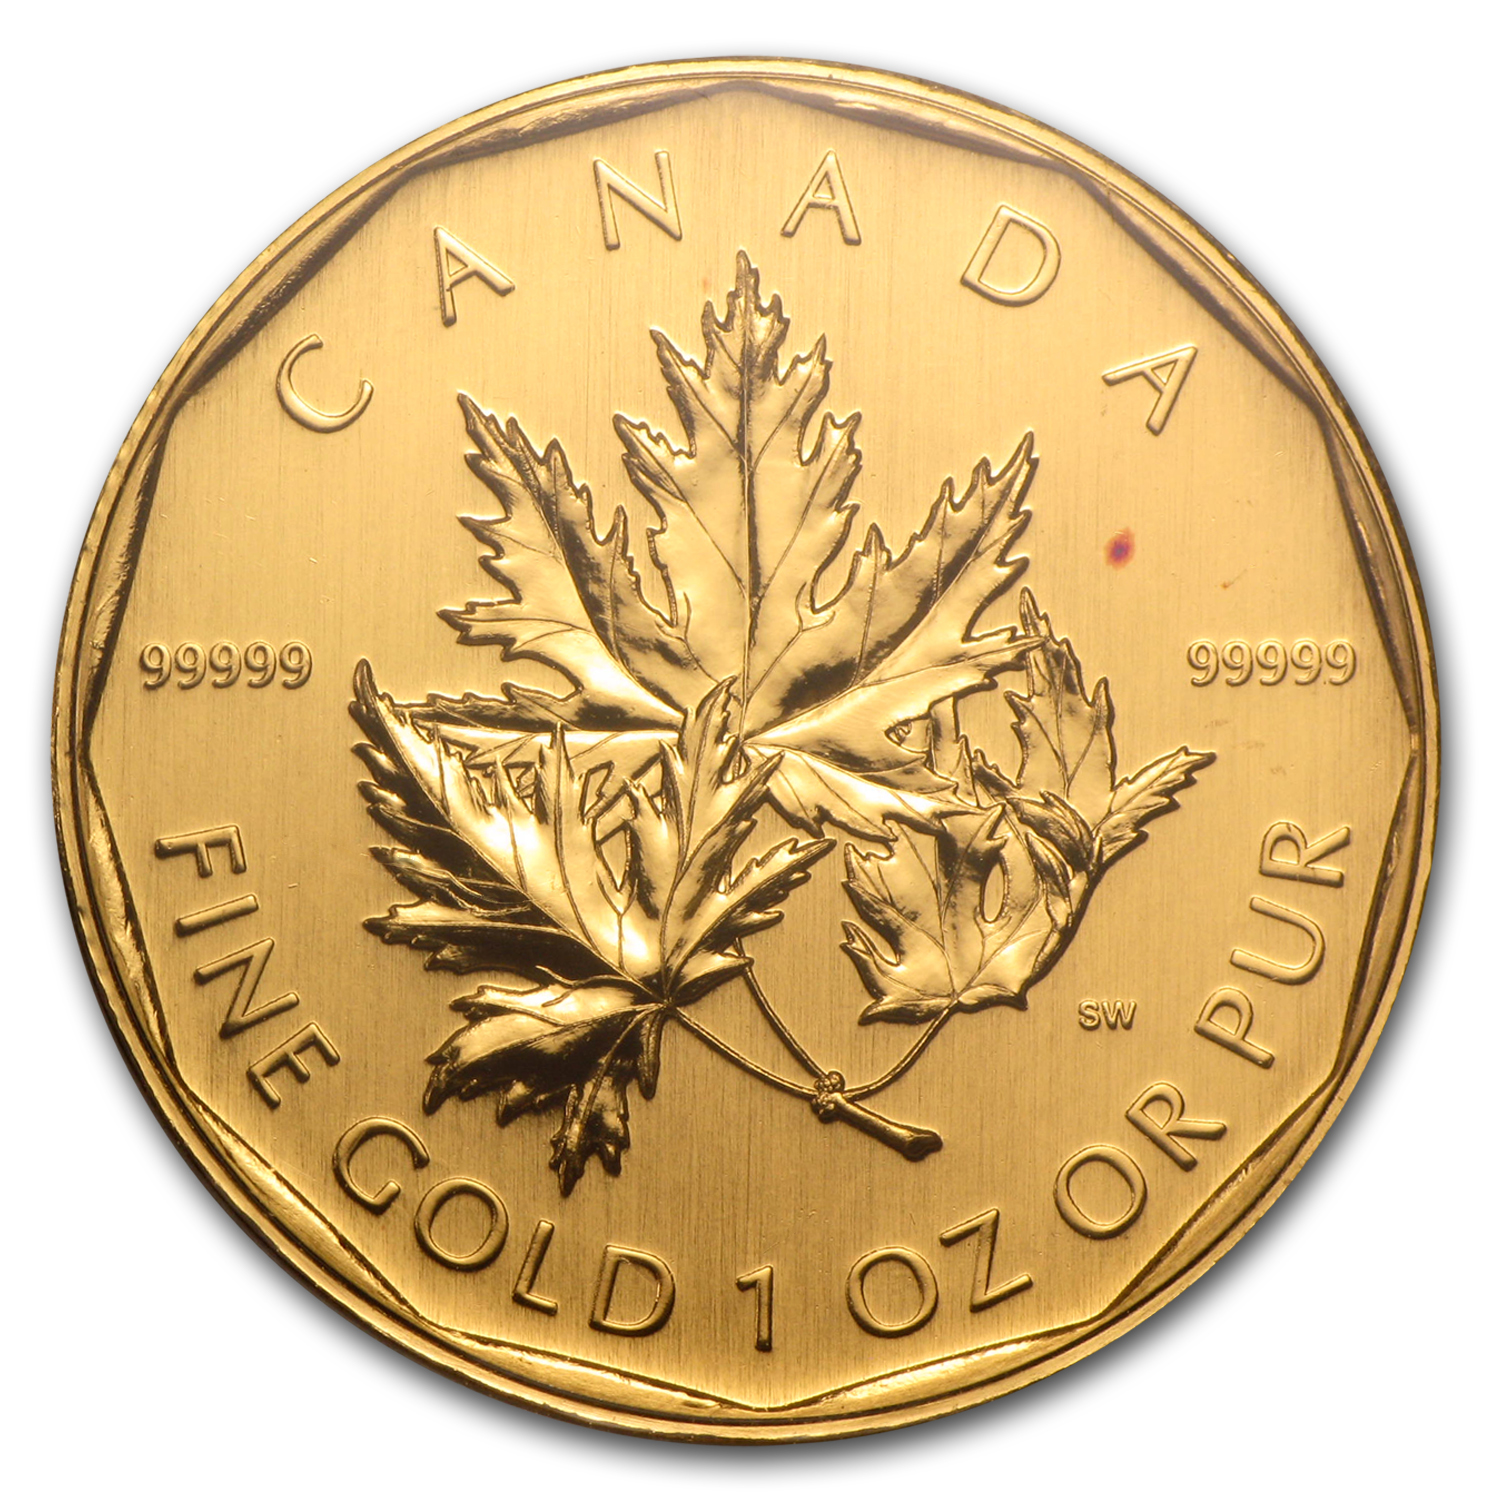 2007 Canada 1 oz Gold Maple Leaf .99999 BU (No Assay)